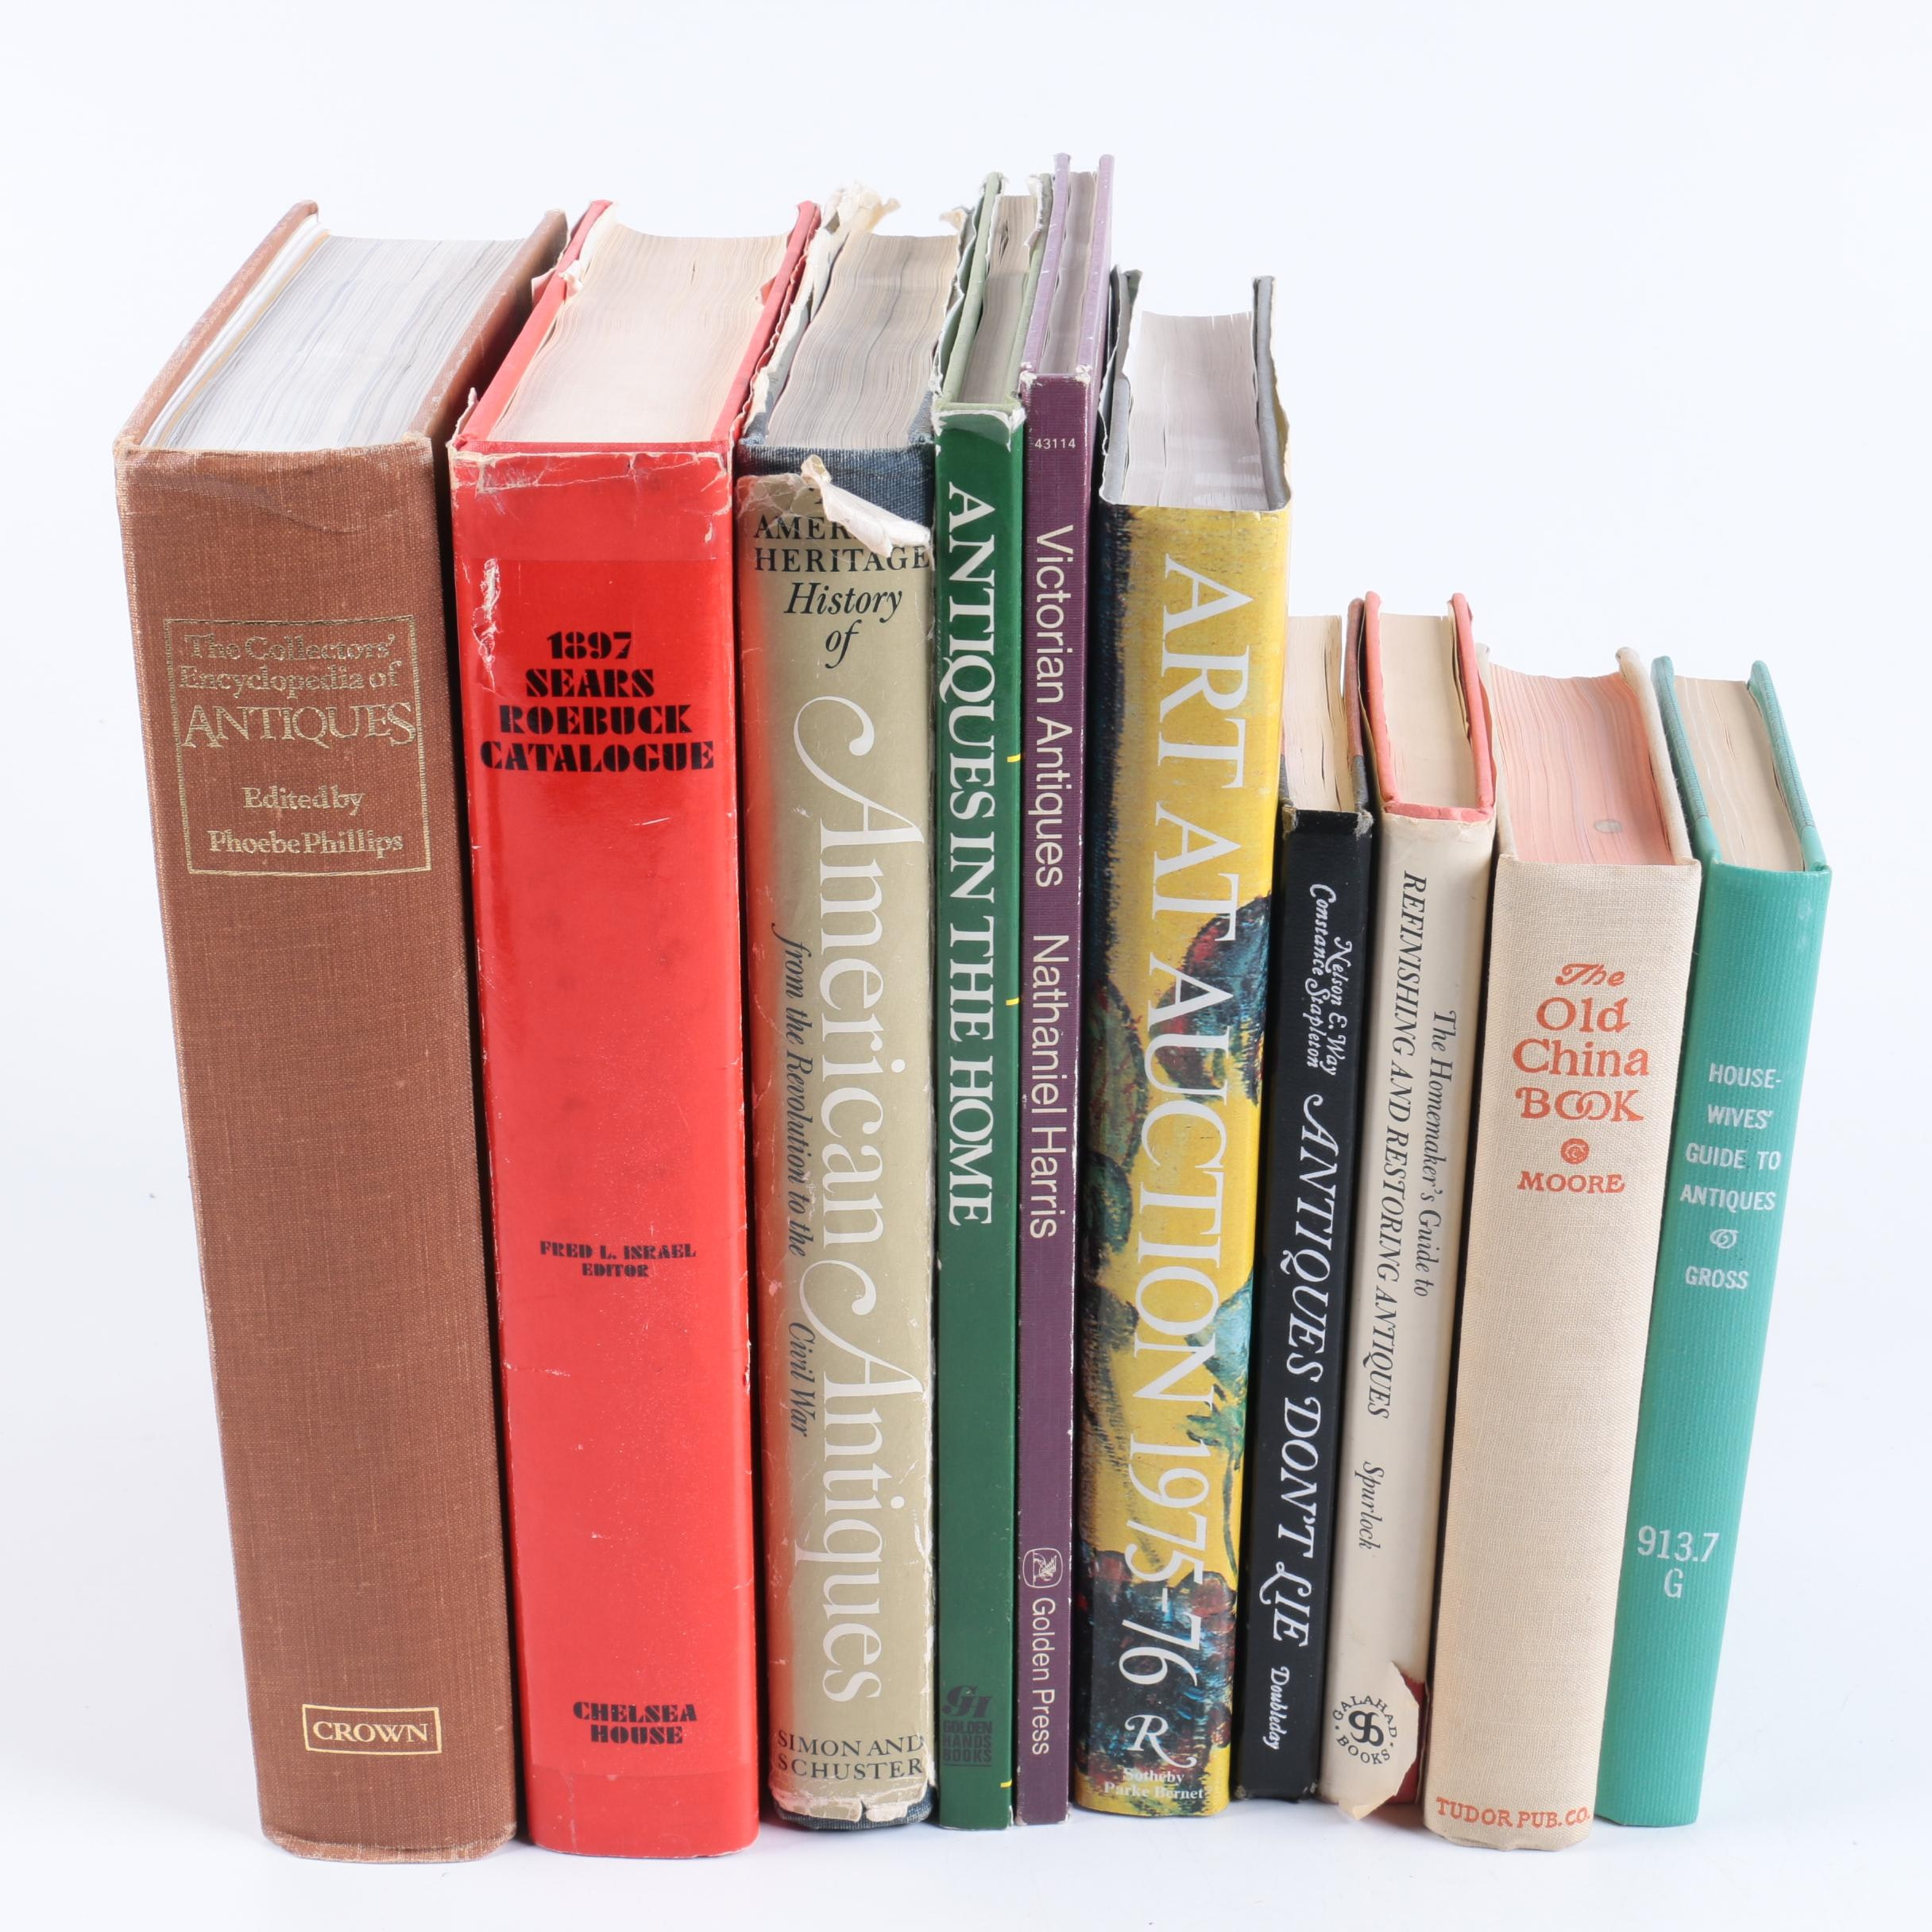 """Assorted Books on Antiques Including 1959 """"Housewives' Guide to Antiques"""""""